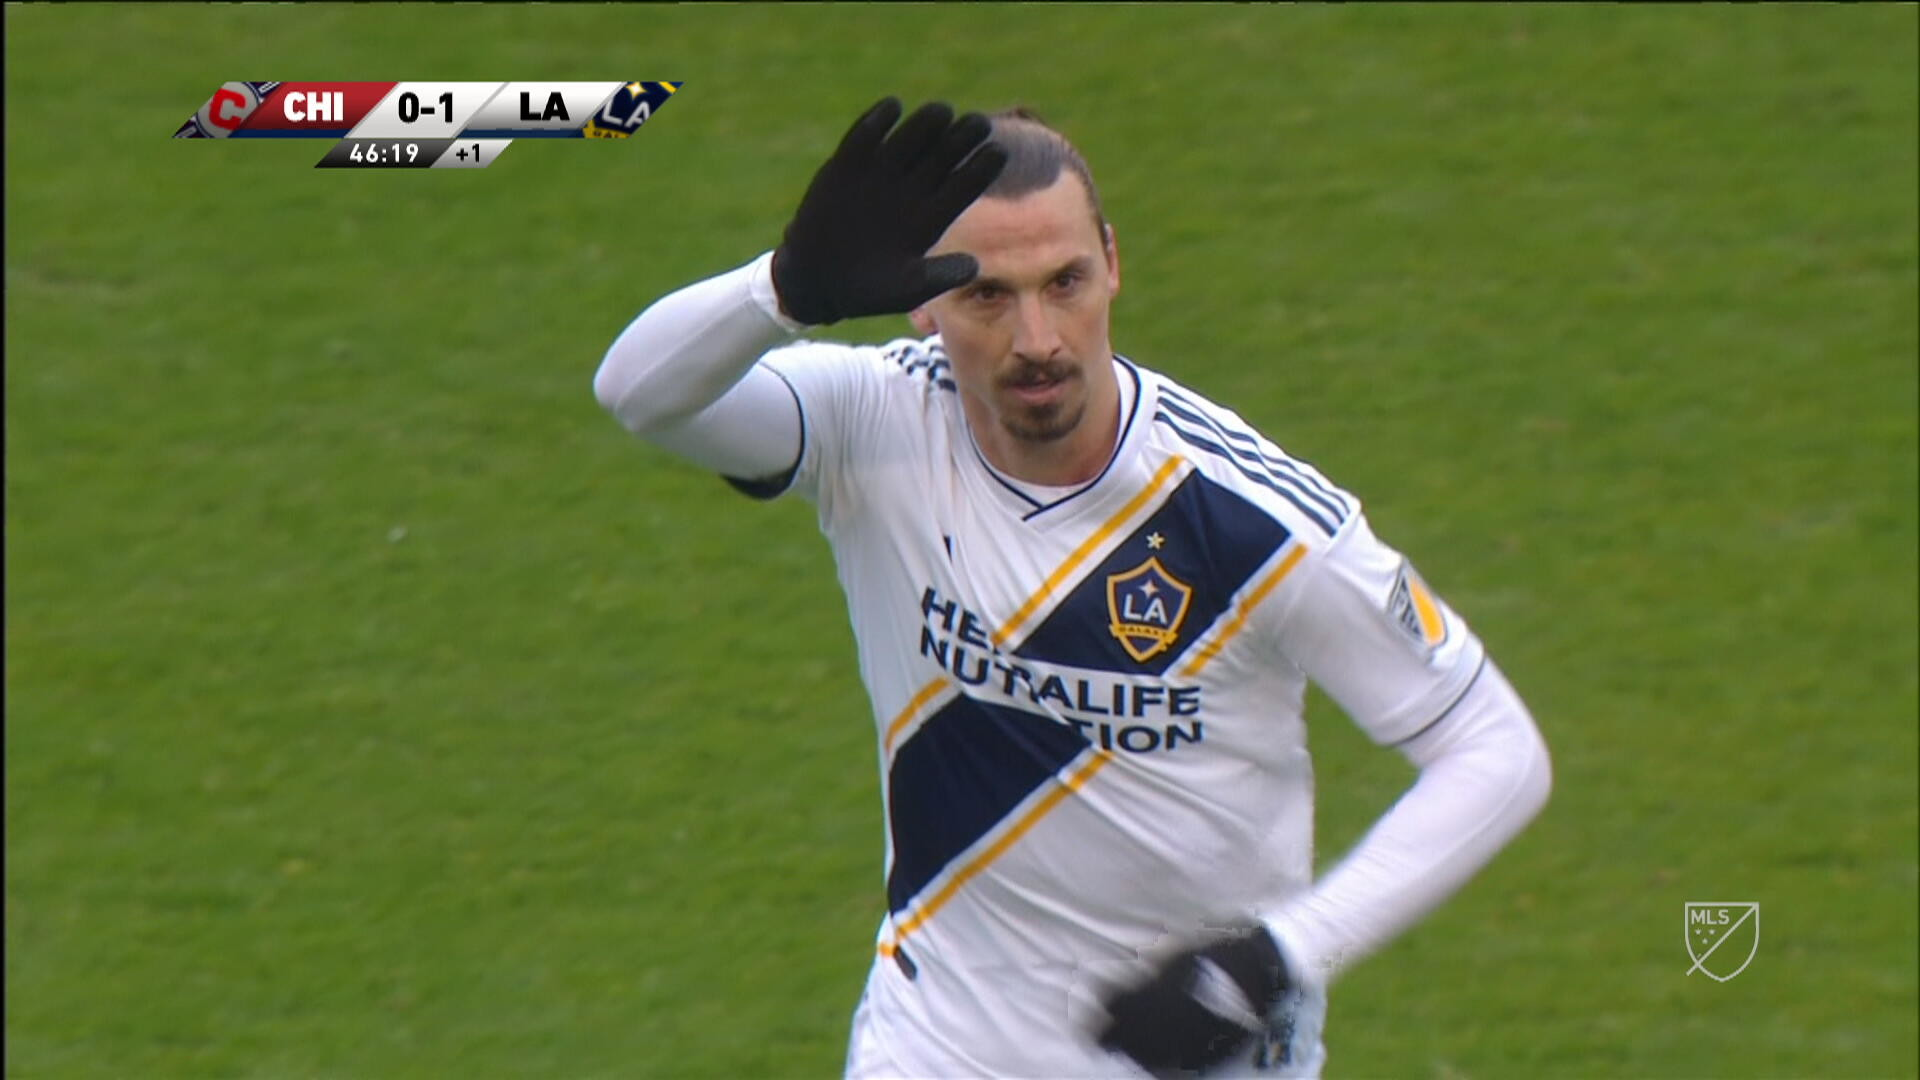 Res: 1920x1080, WATCH: Zlatan Ibrahimovic scores on first LA Galaxy start